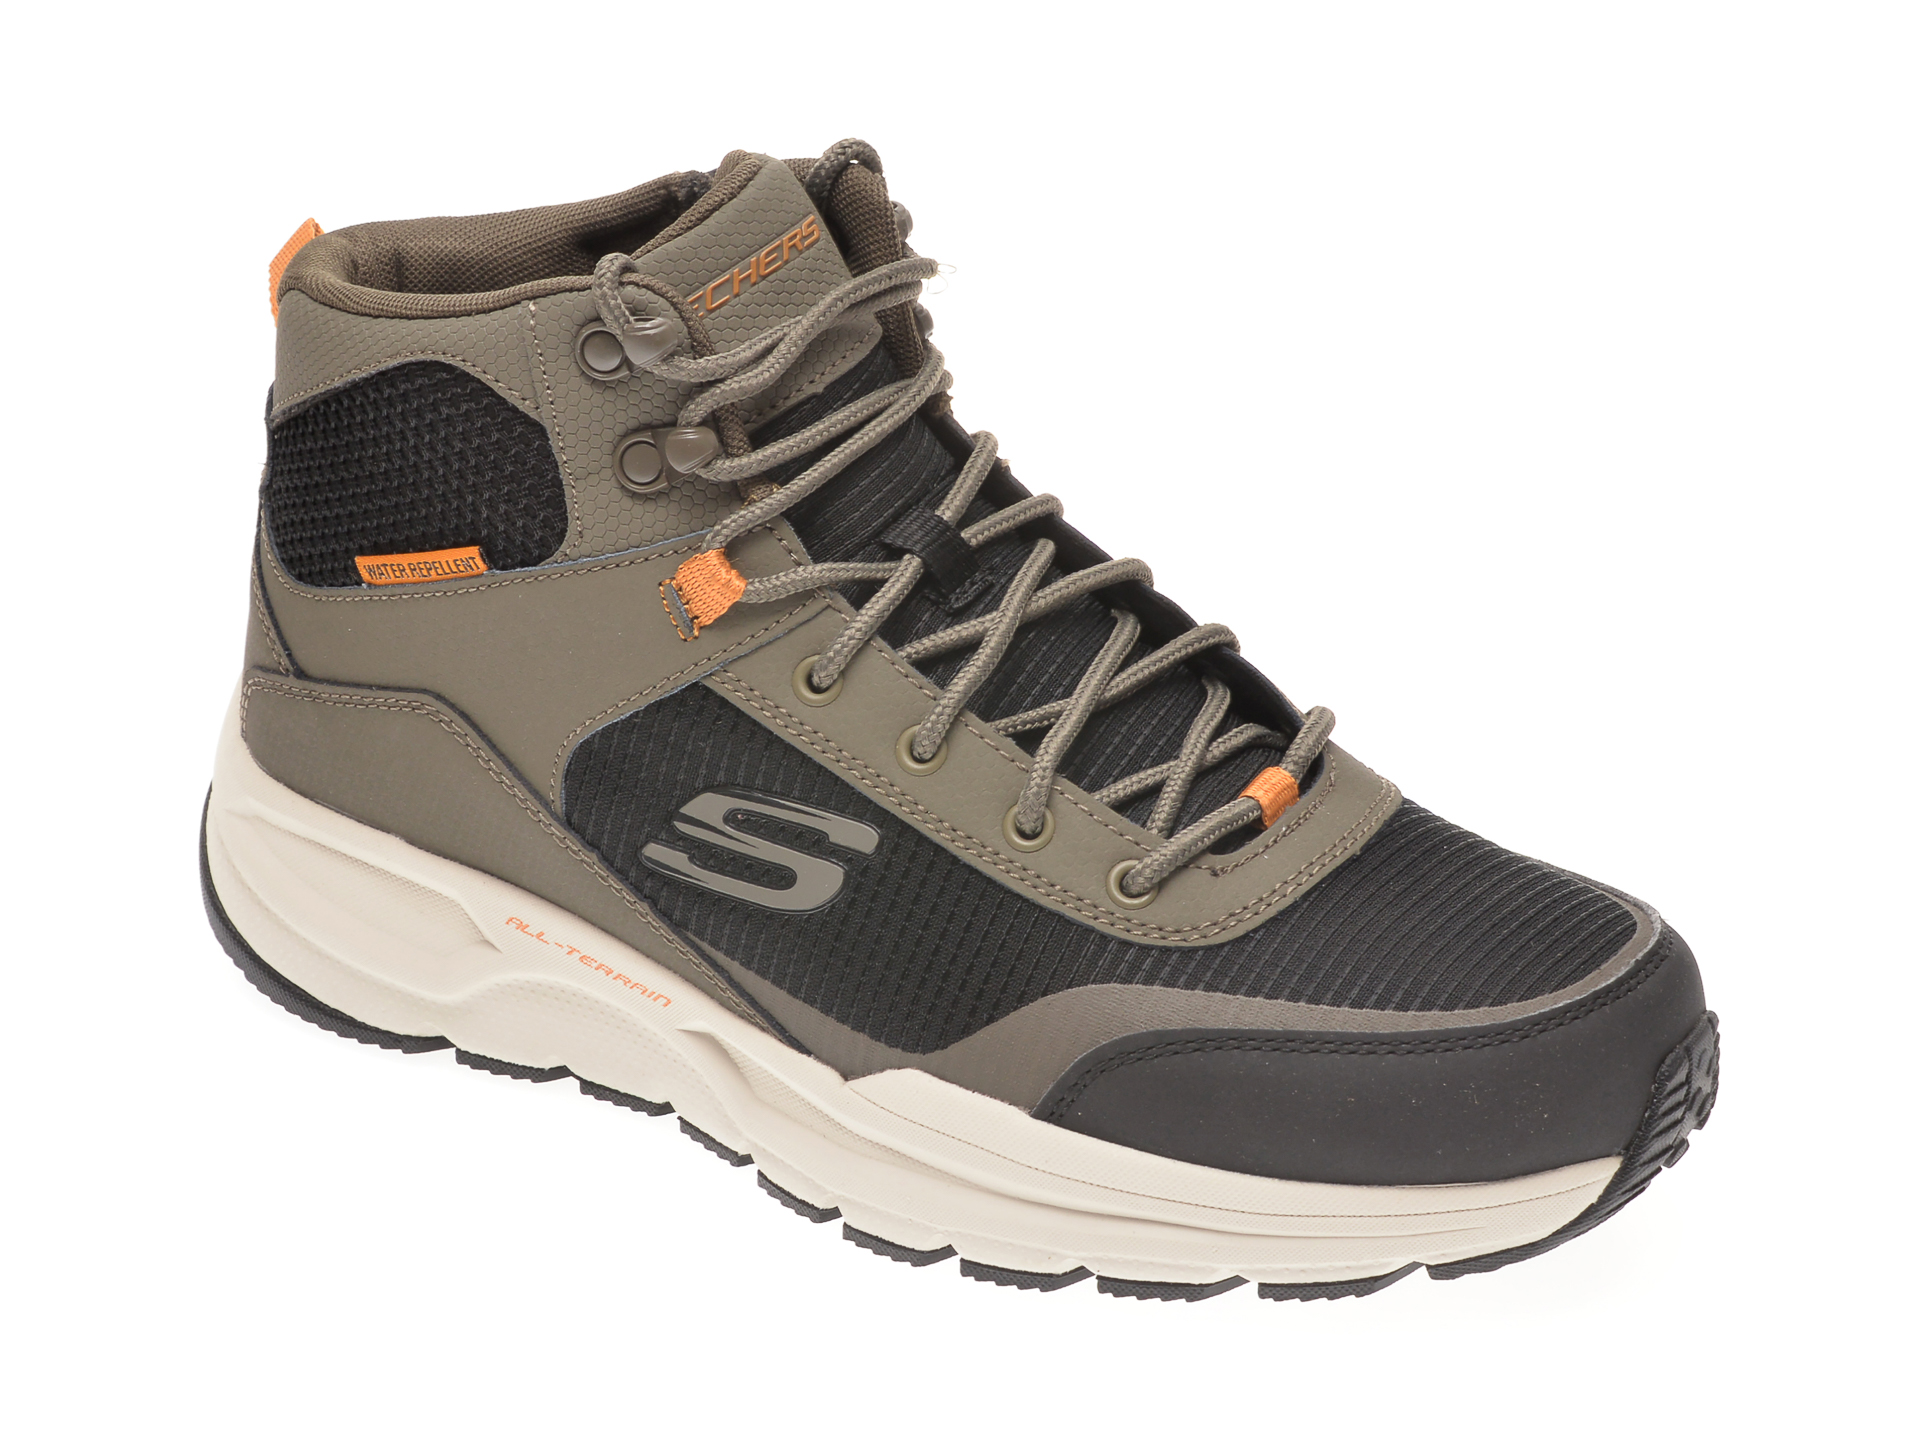 Ghete SKECHERS negre, ESCAPE PLAN 2.0 WOODROCK, din material textil si piele naturala imagine